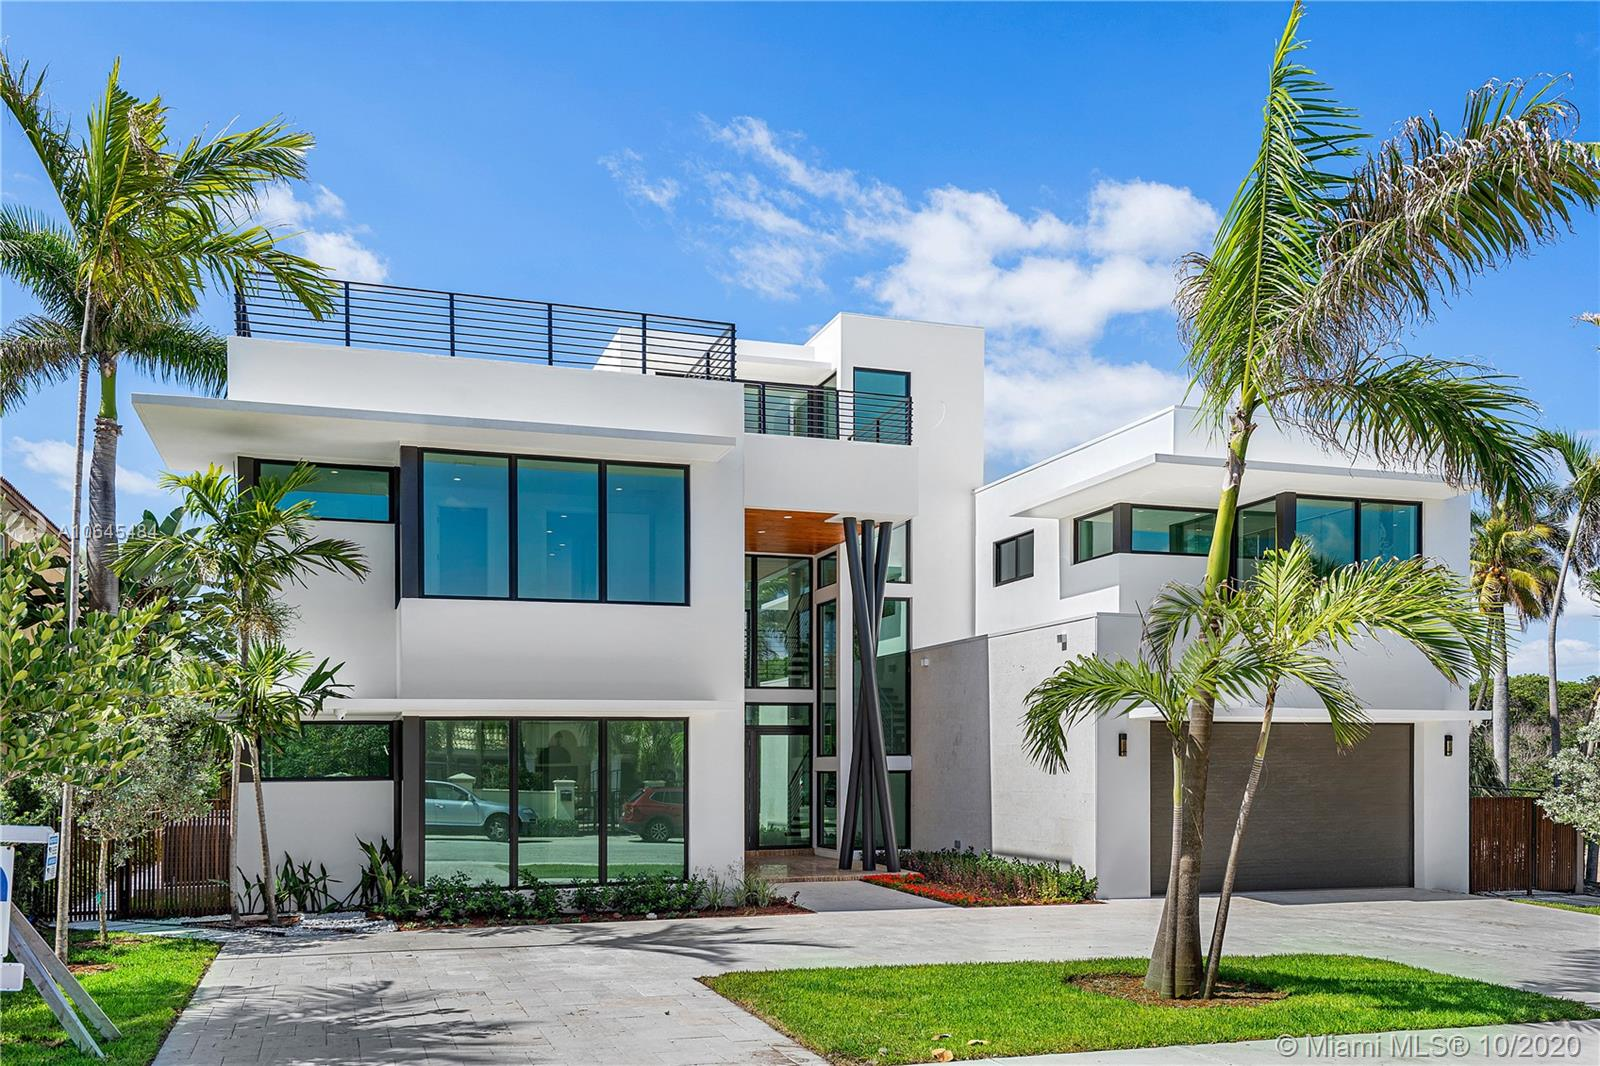 """Spectacular New Construction 5 bed/5.2 bath pool home in a very desirable location just a short block from the beach. This home was built to the highest standards with impeccable finishes. The patios and terraces have southern exposure, which takes advantage of the winter sun. The third floor has views of the ocean and the park.  This is an ideal spot to """"chill"""" and expand the entertainment areas of the home. Naturally, the home has an elevator. The first floor has a large bedroom which could be used for a mother-in-law, maid or guest quarters. The large 1/4 acre + lot adjacent is also available, this lot backs up to the park with access to the lake """"lagoon""""."""